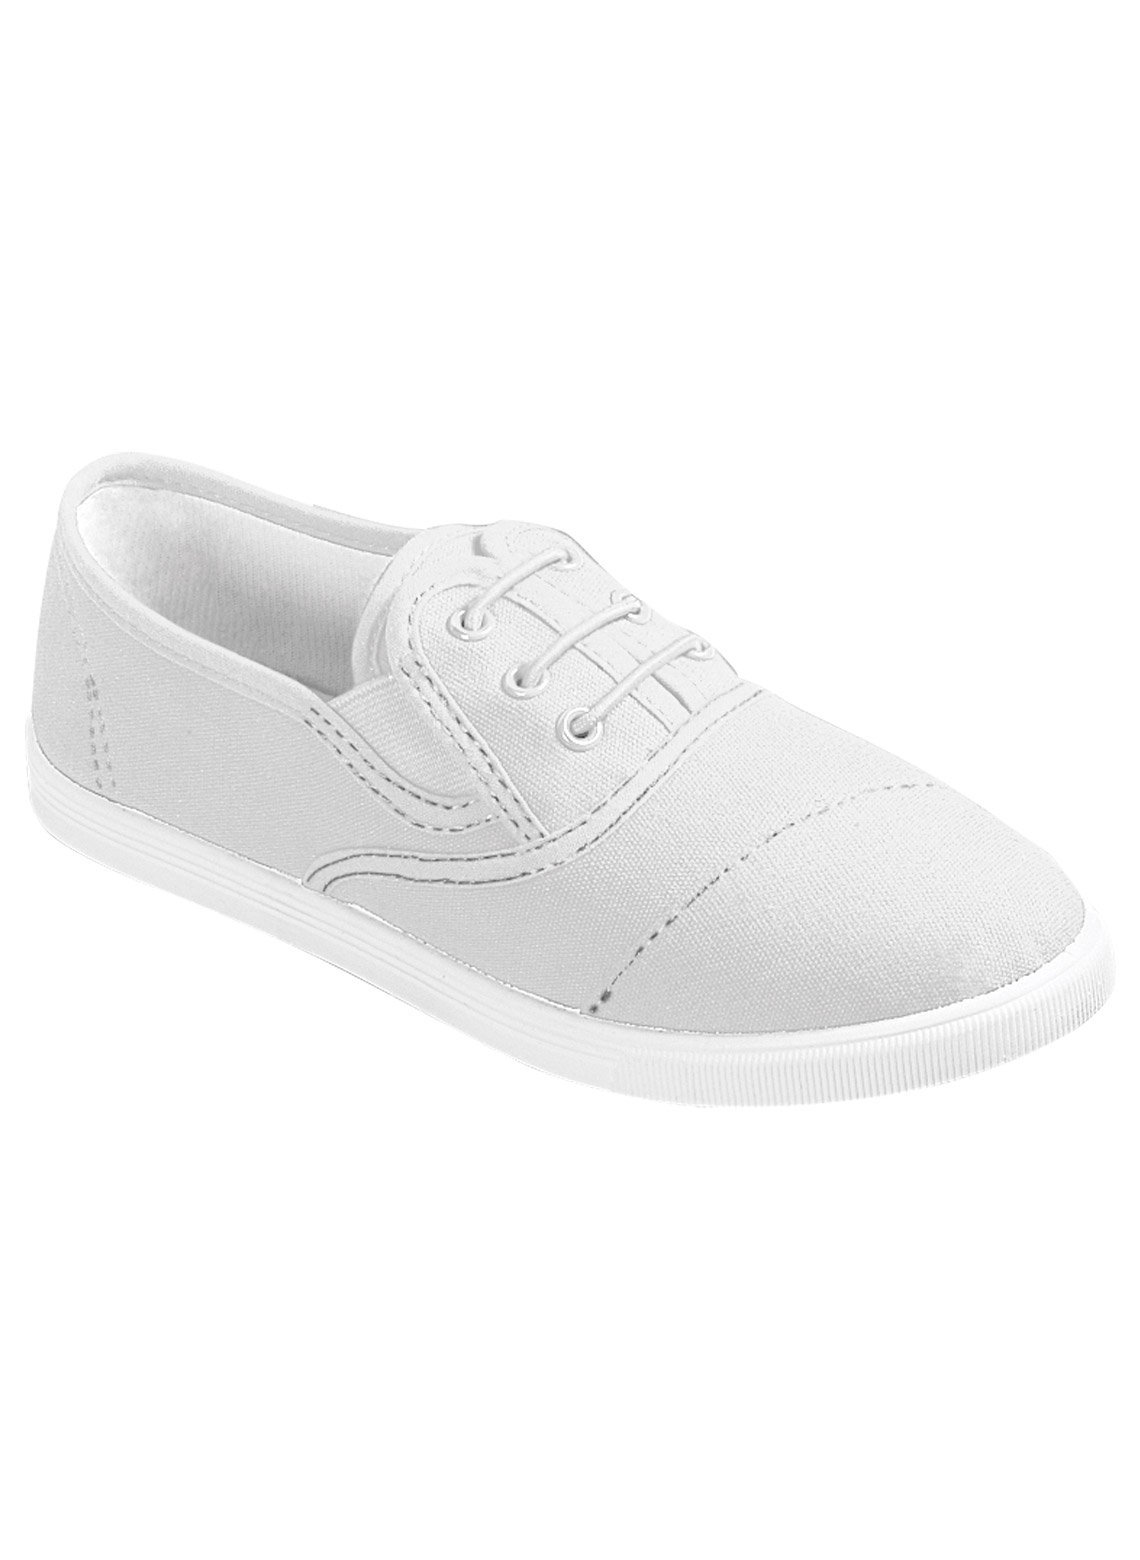 Carol Wright Gifts No-Tie Sneaker, White, Size 8 (Wide)